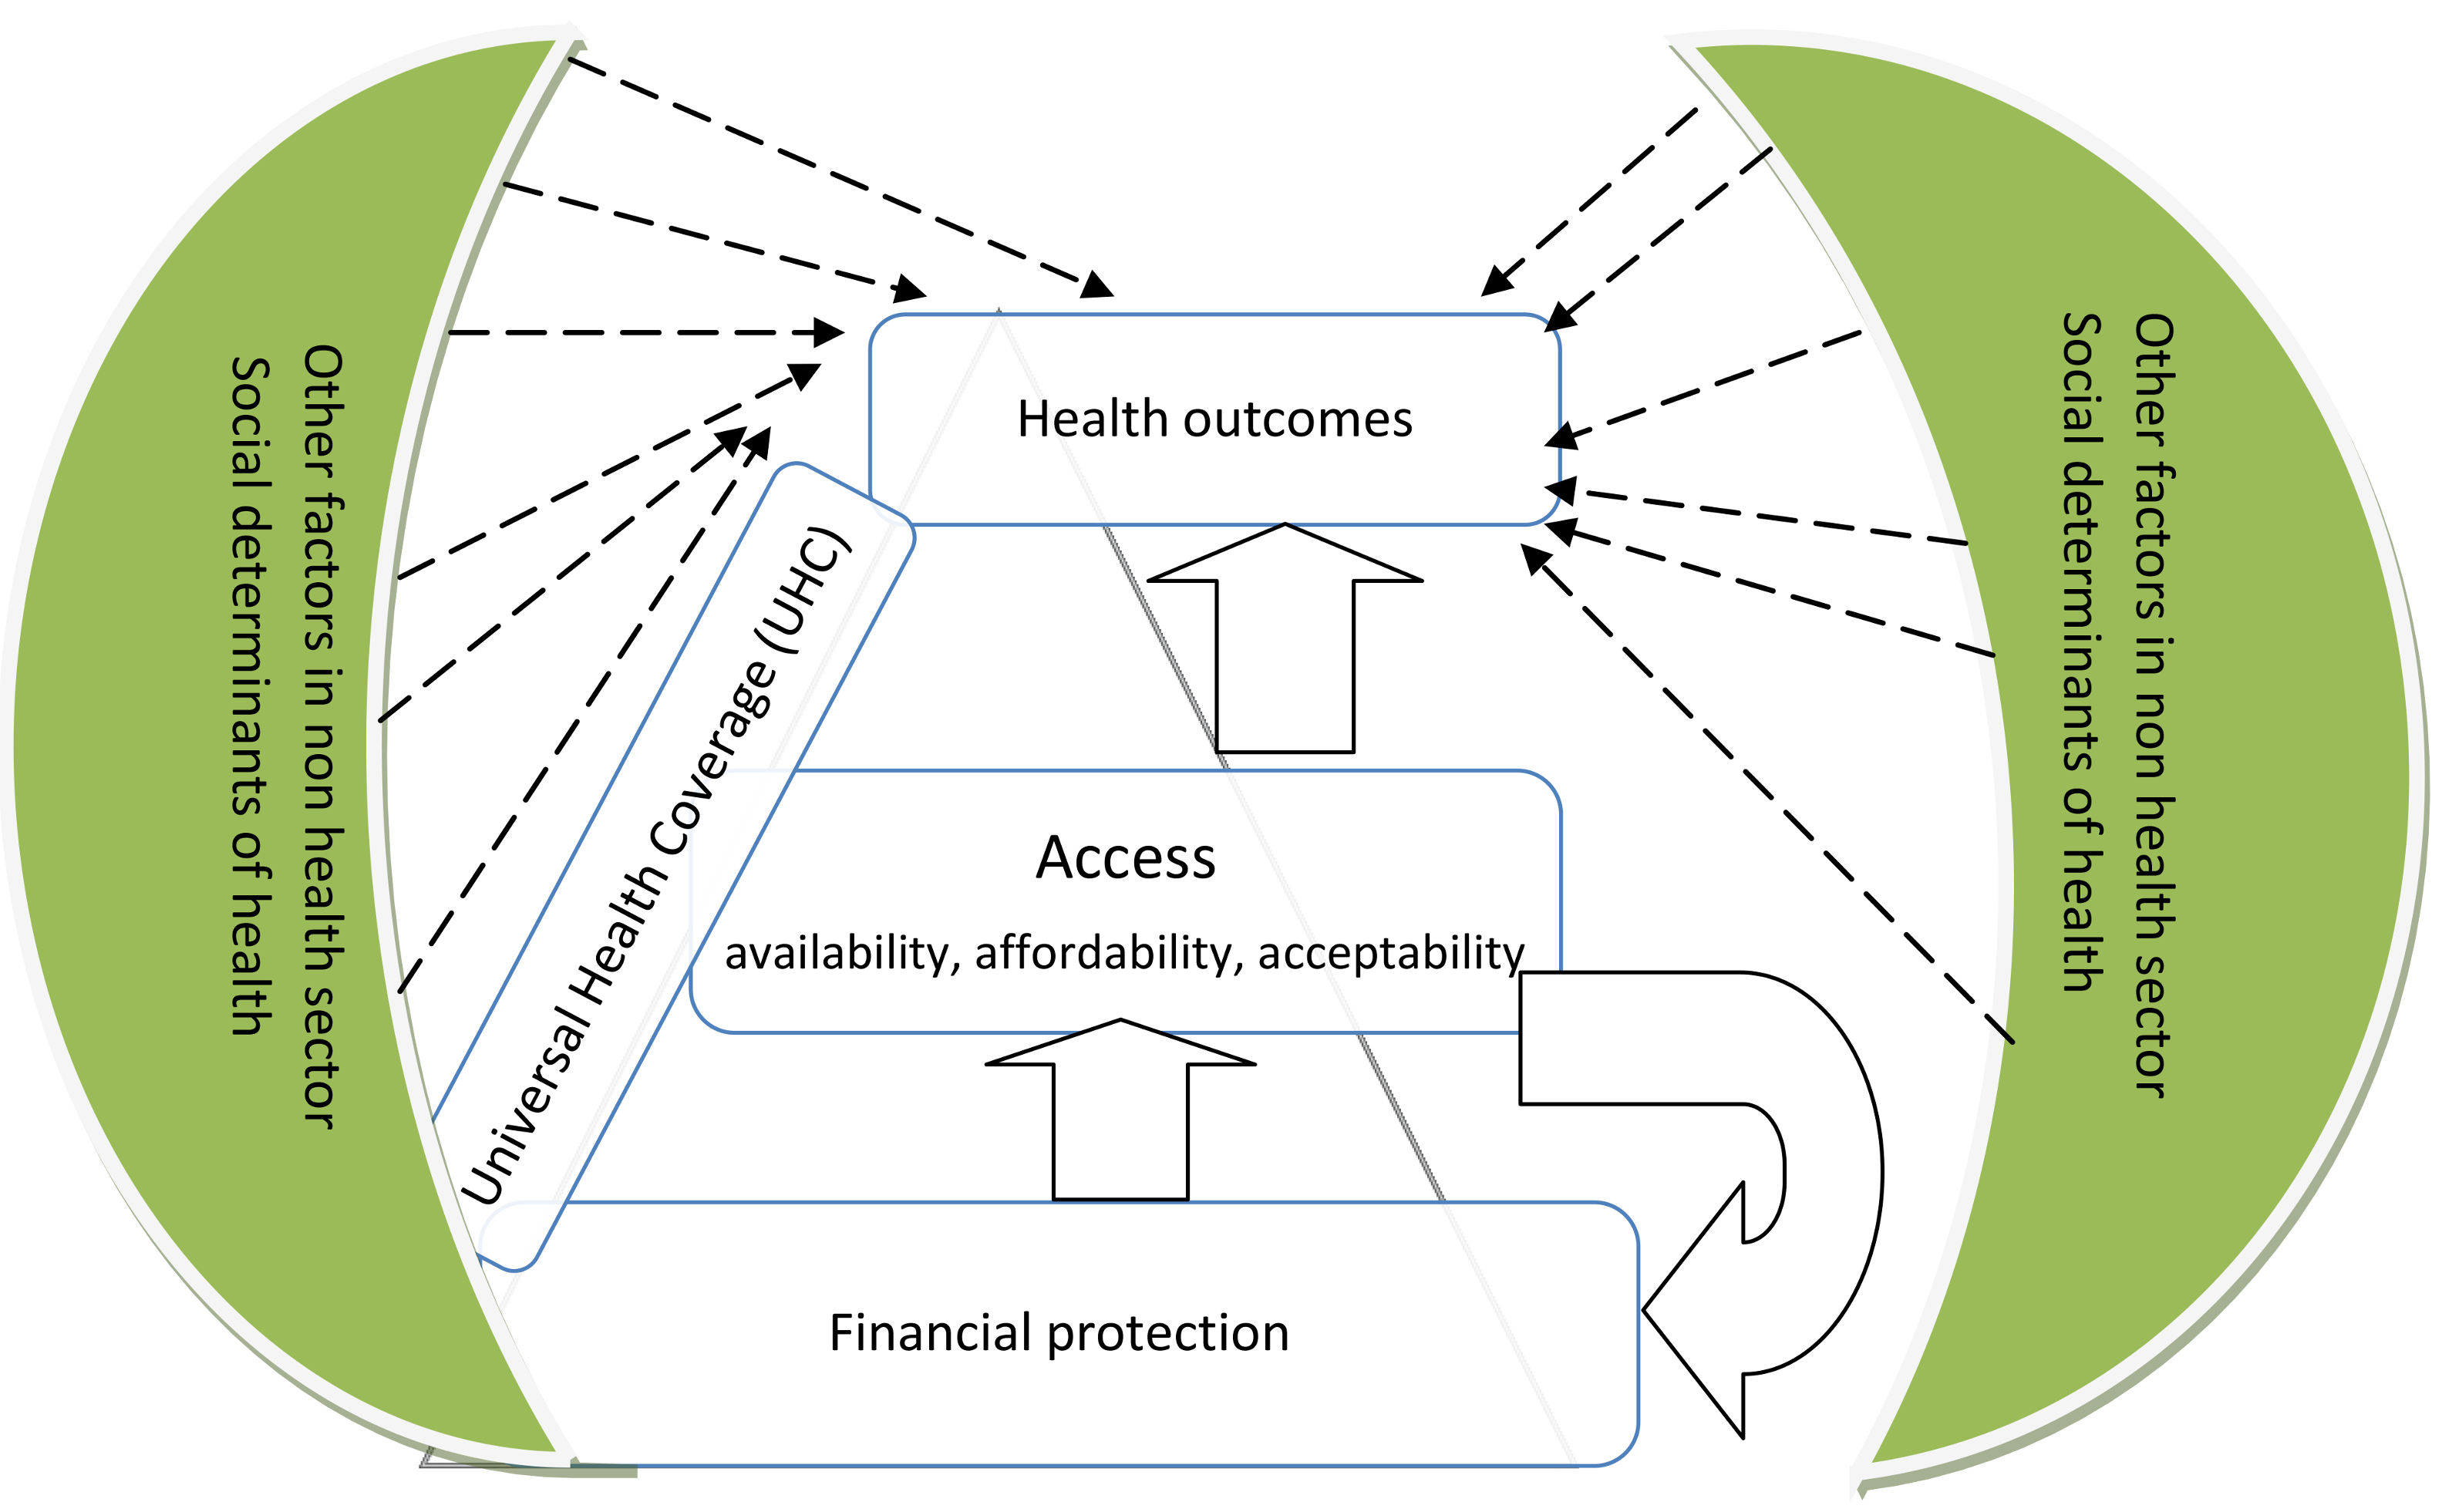 Universal health coverage assessment framework.